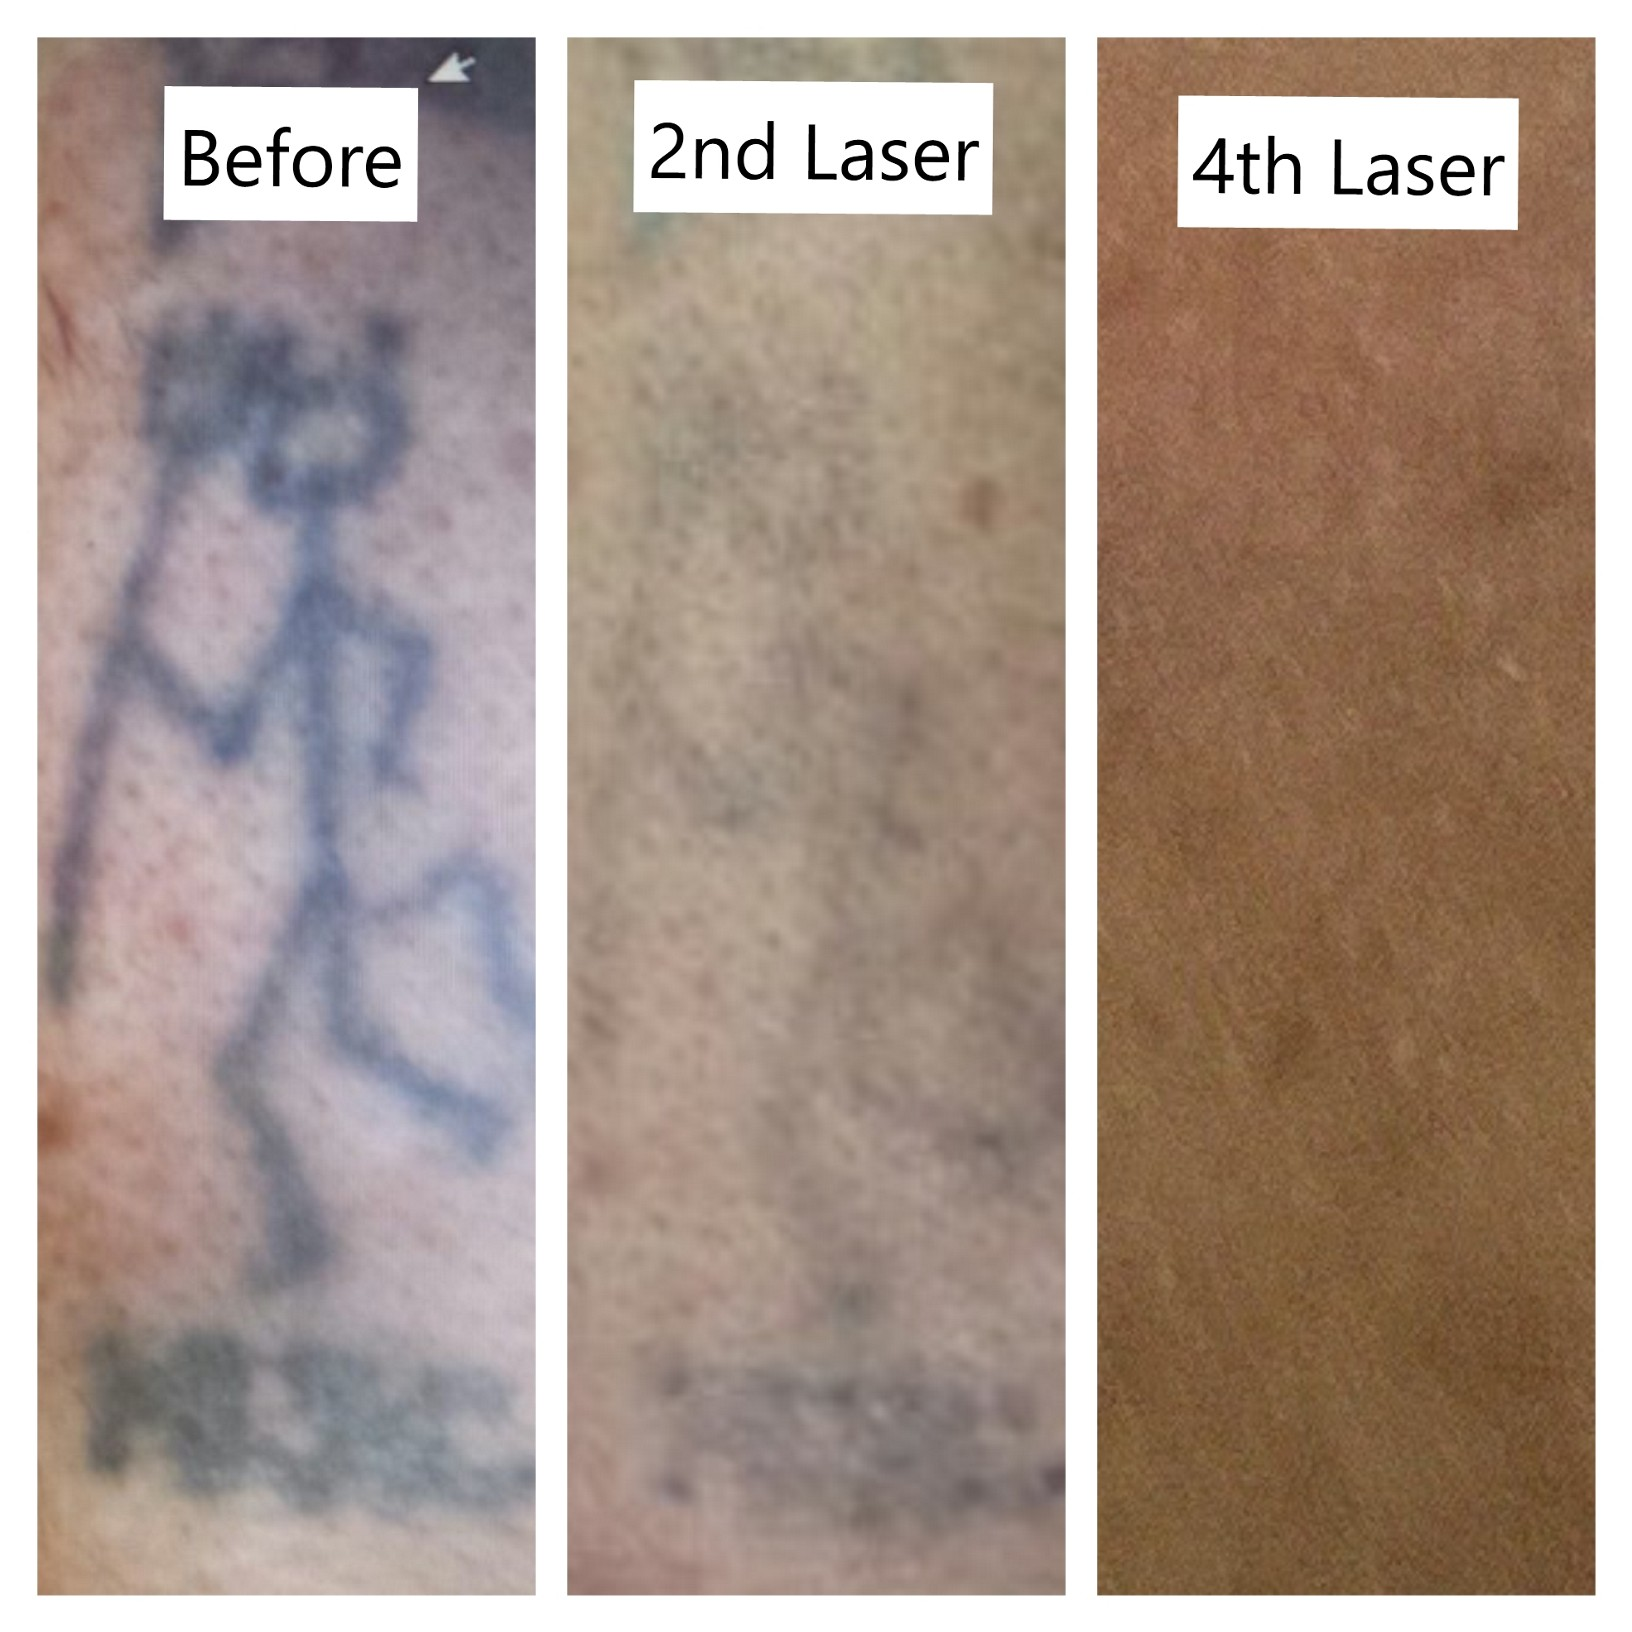 Laser tattoo removal York - Ruby laser Hull clinic